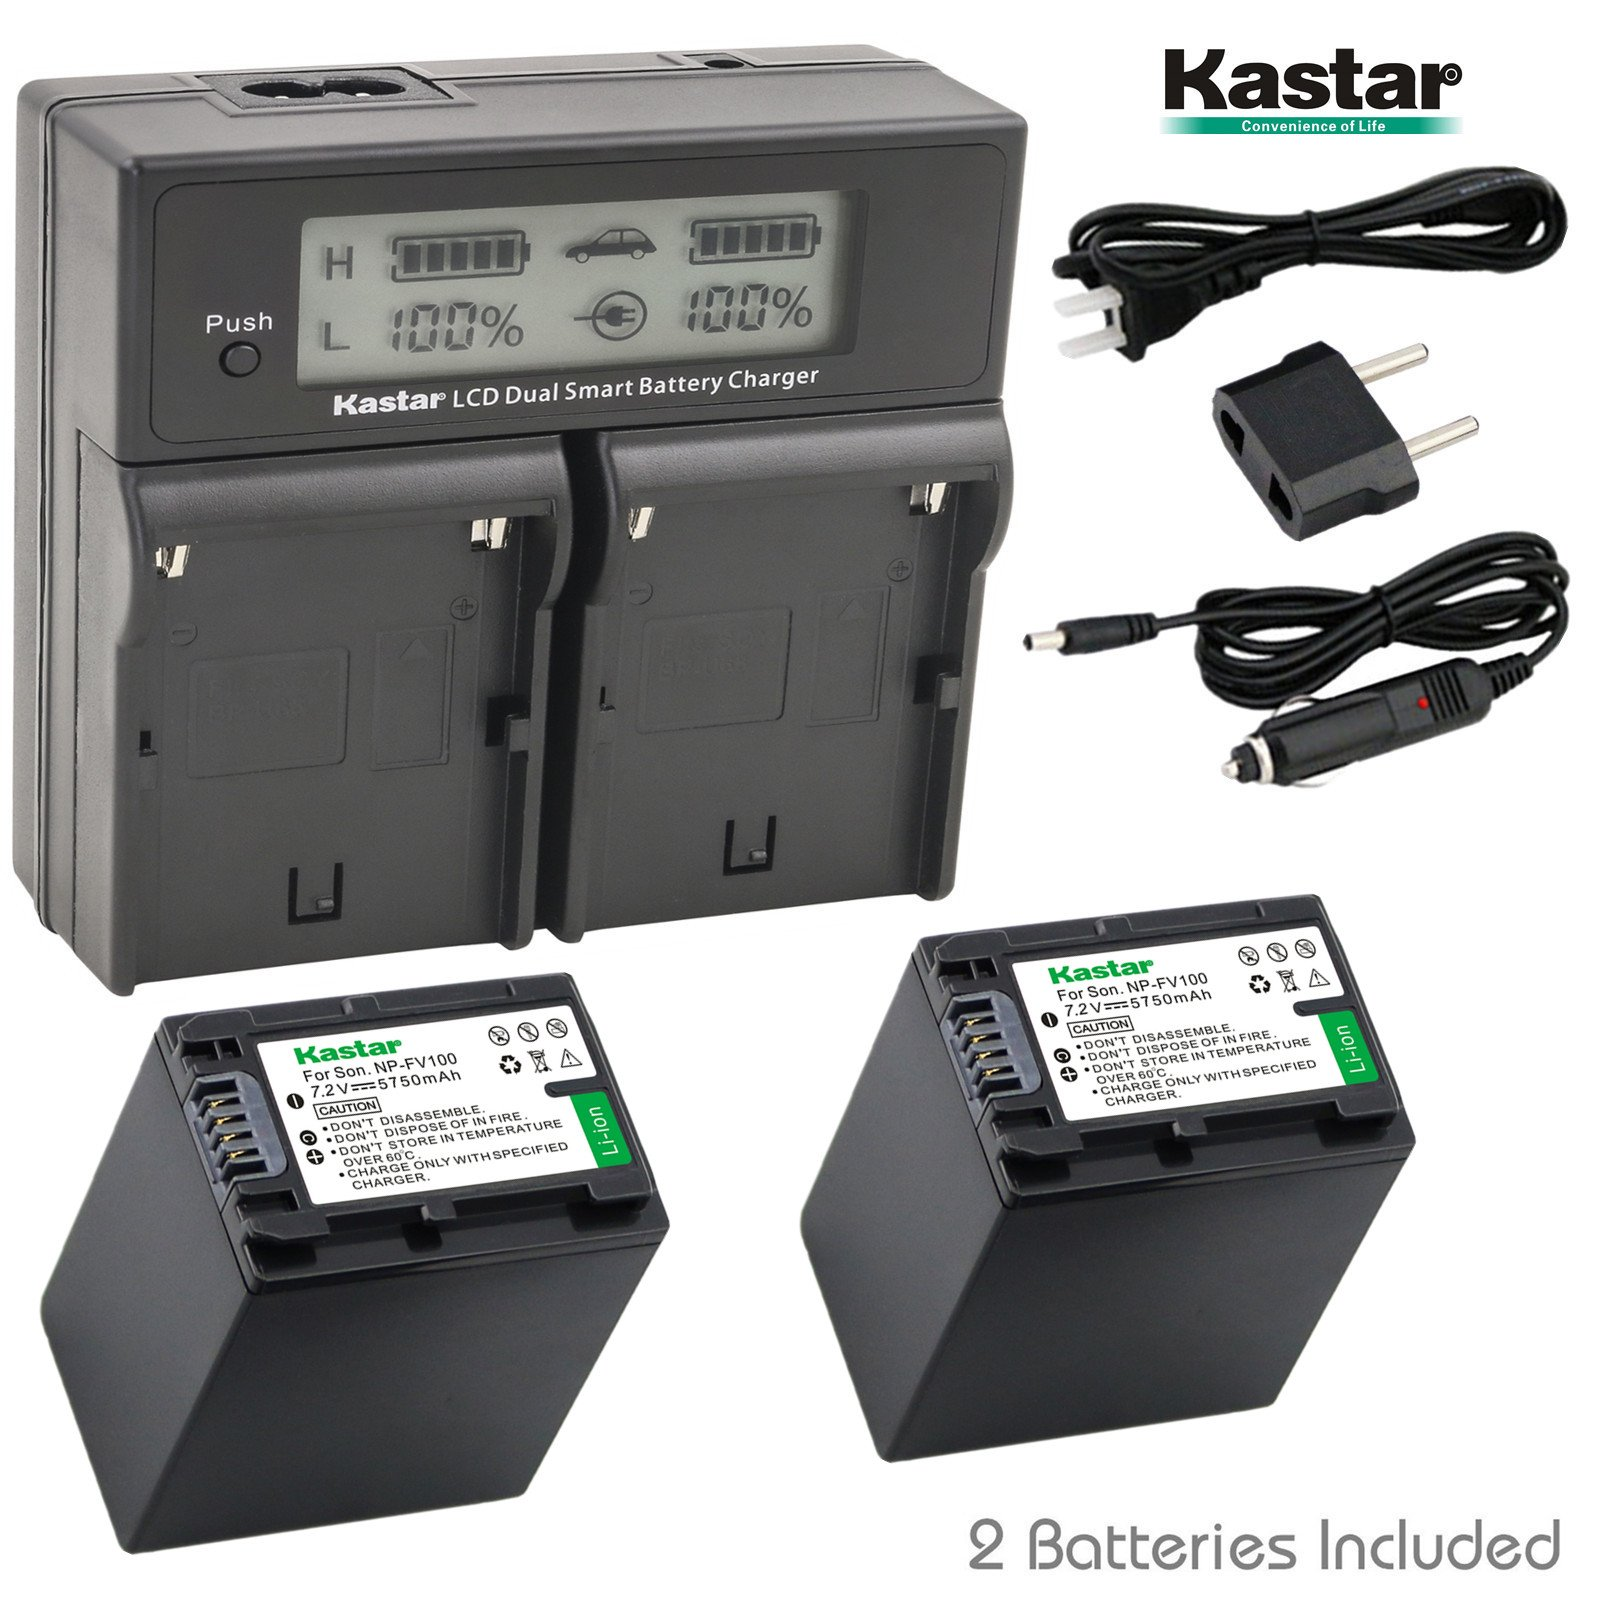 Kastar LCD Dual Smart Fast Charger & 2 x Battery for Sony NP-FV100, NP-FH100, NPFV100, NPFH100, FV100, FH100 and HDR-CX110, CX130/B, CX160/B, XR160, CX360V, CX560V, CX700V, PJ10, HDR-PJ30V, HDR-PJ50V by Kastar